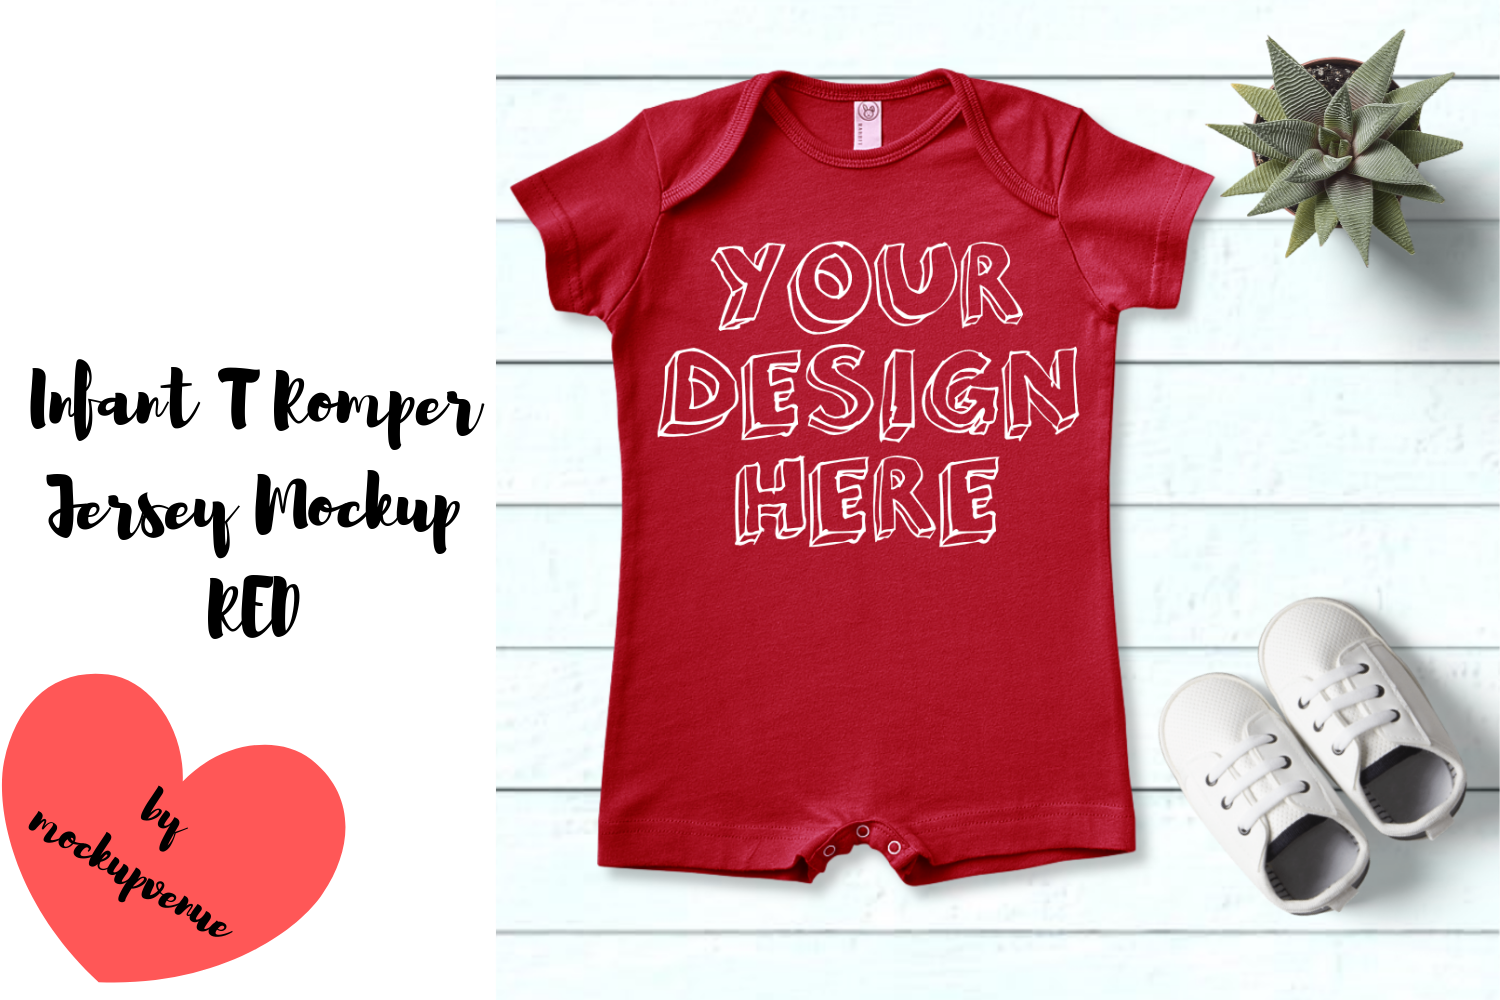 Infant T Romper Jersey Mockup - RED example image 1